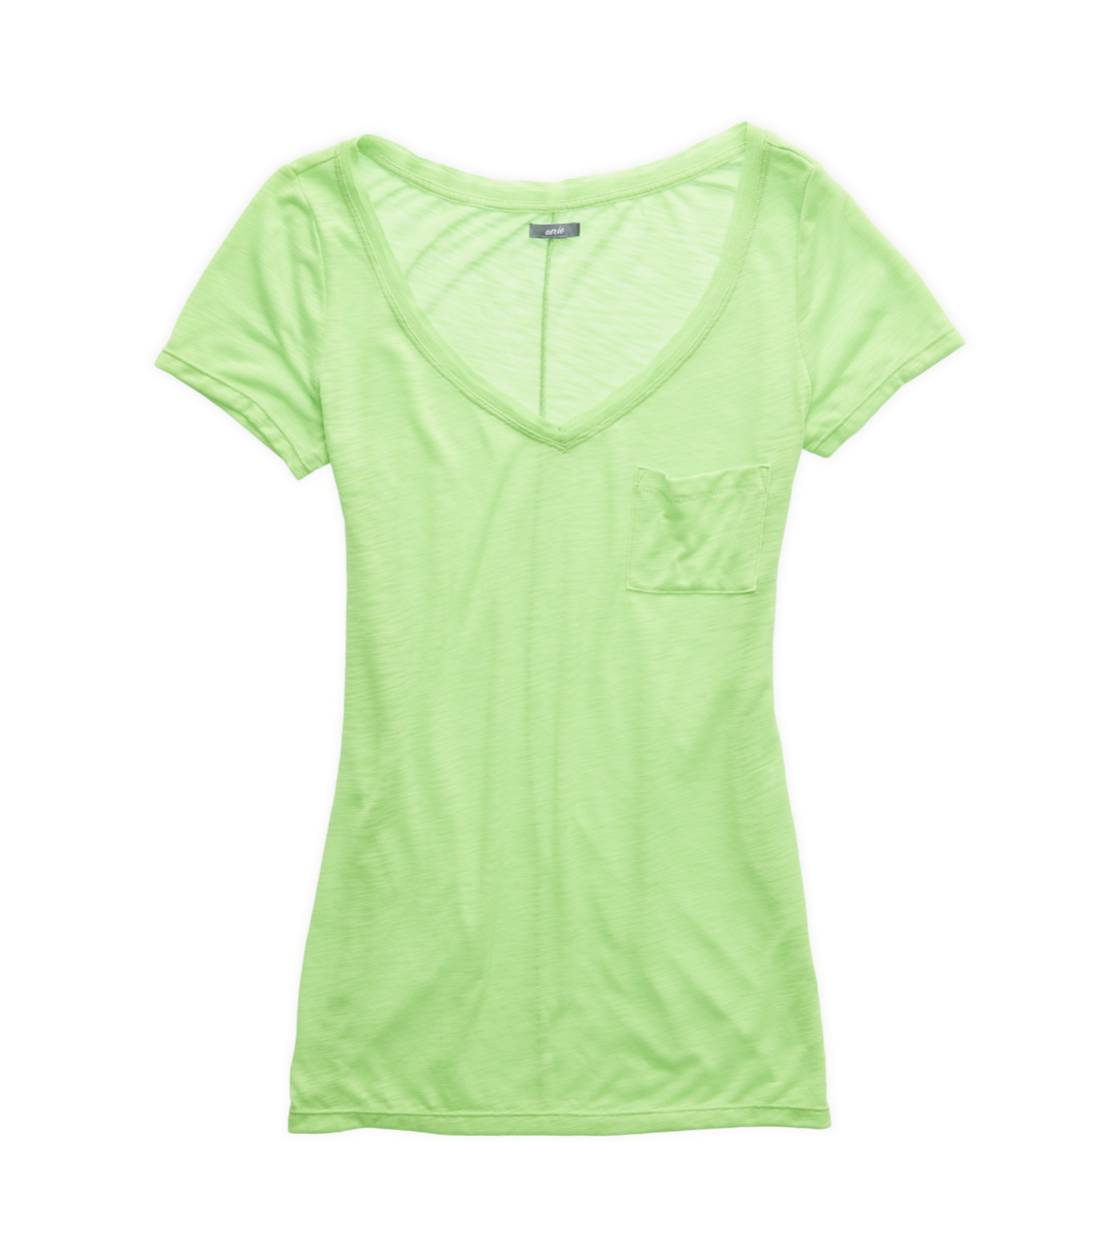 Laser Green Aerie Slim Fit Pocket T-Shirt